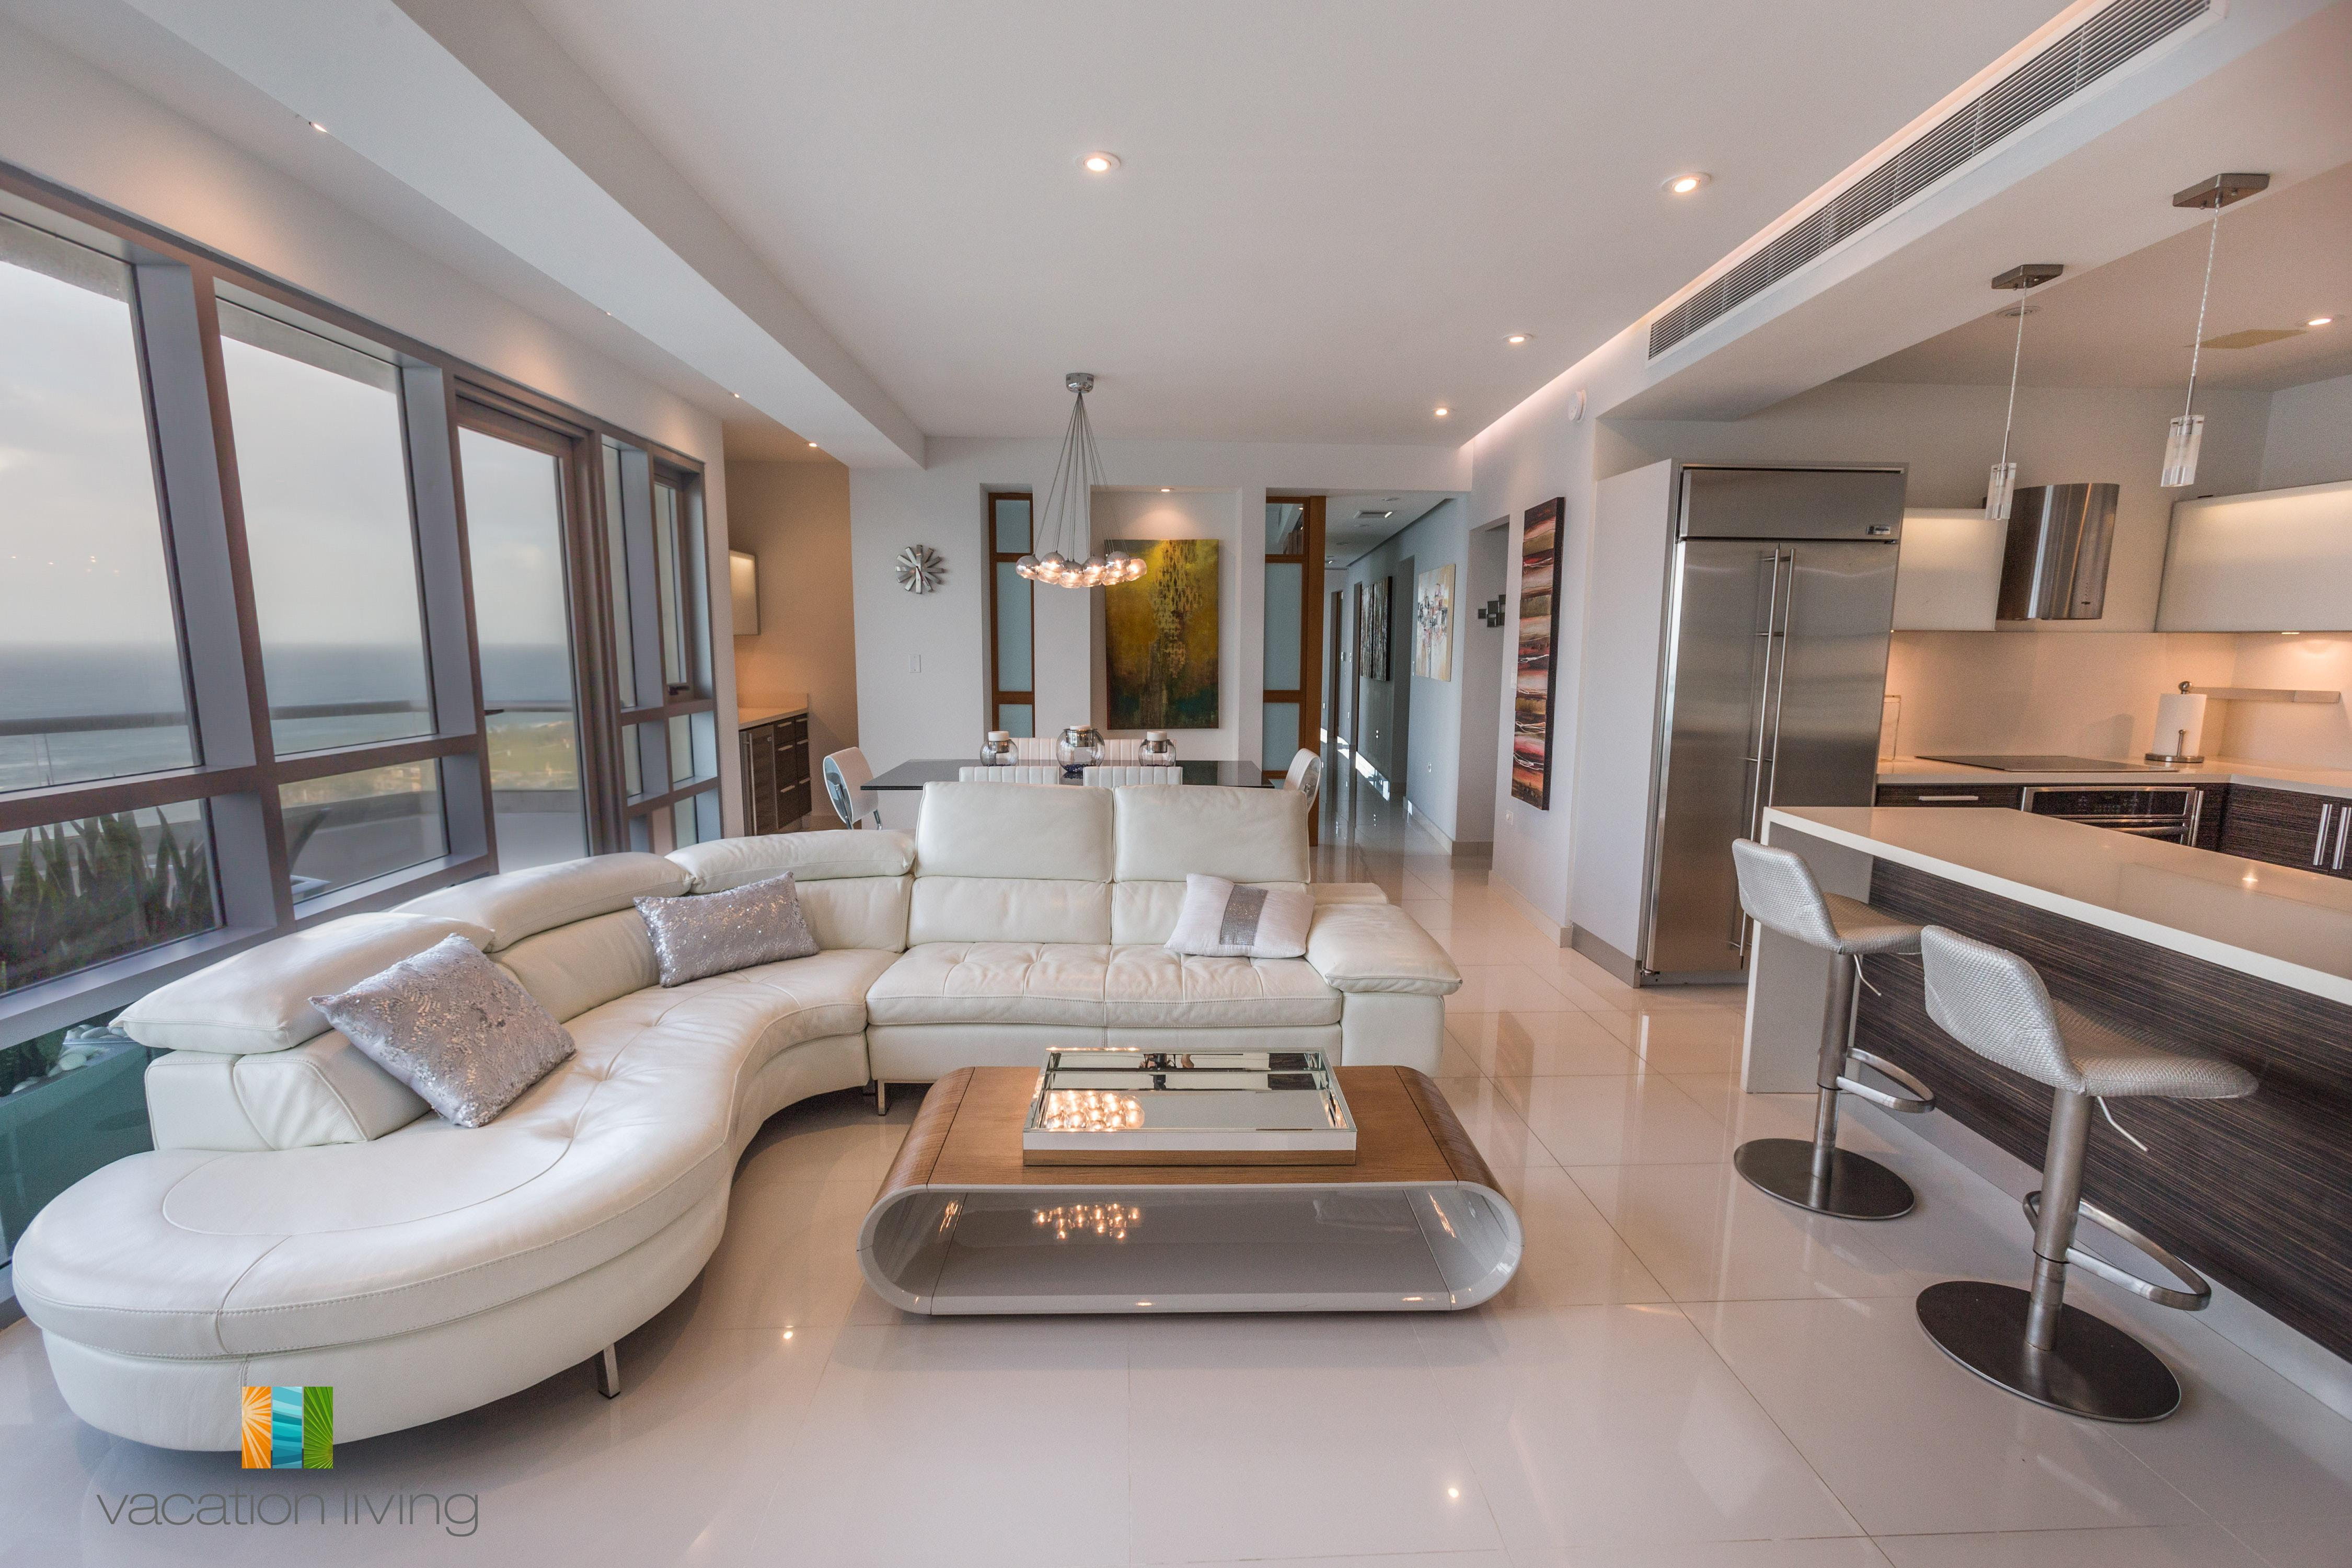 Exquisite Renovated Condo With Breathtaking Views